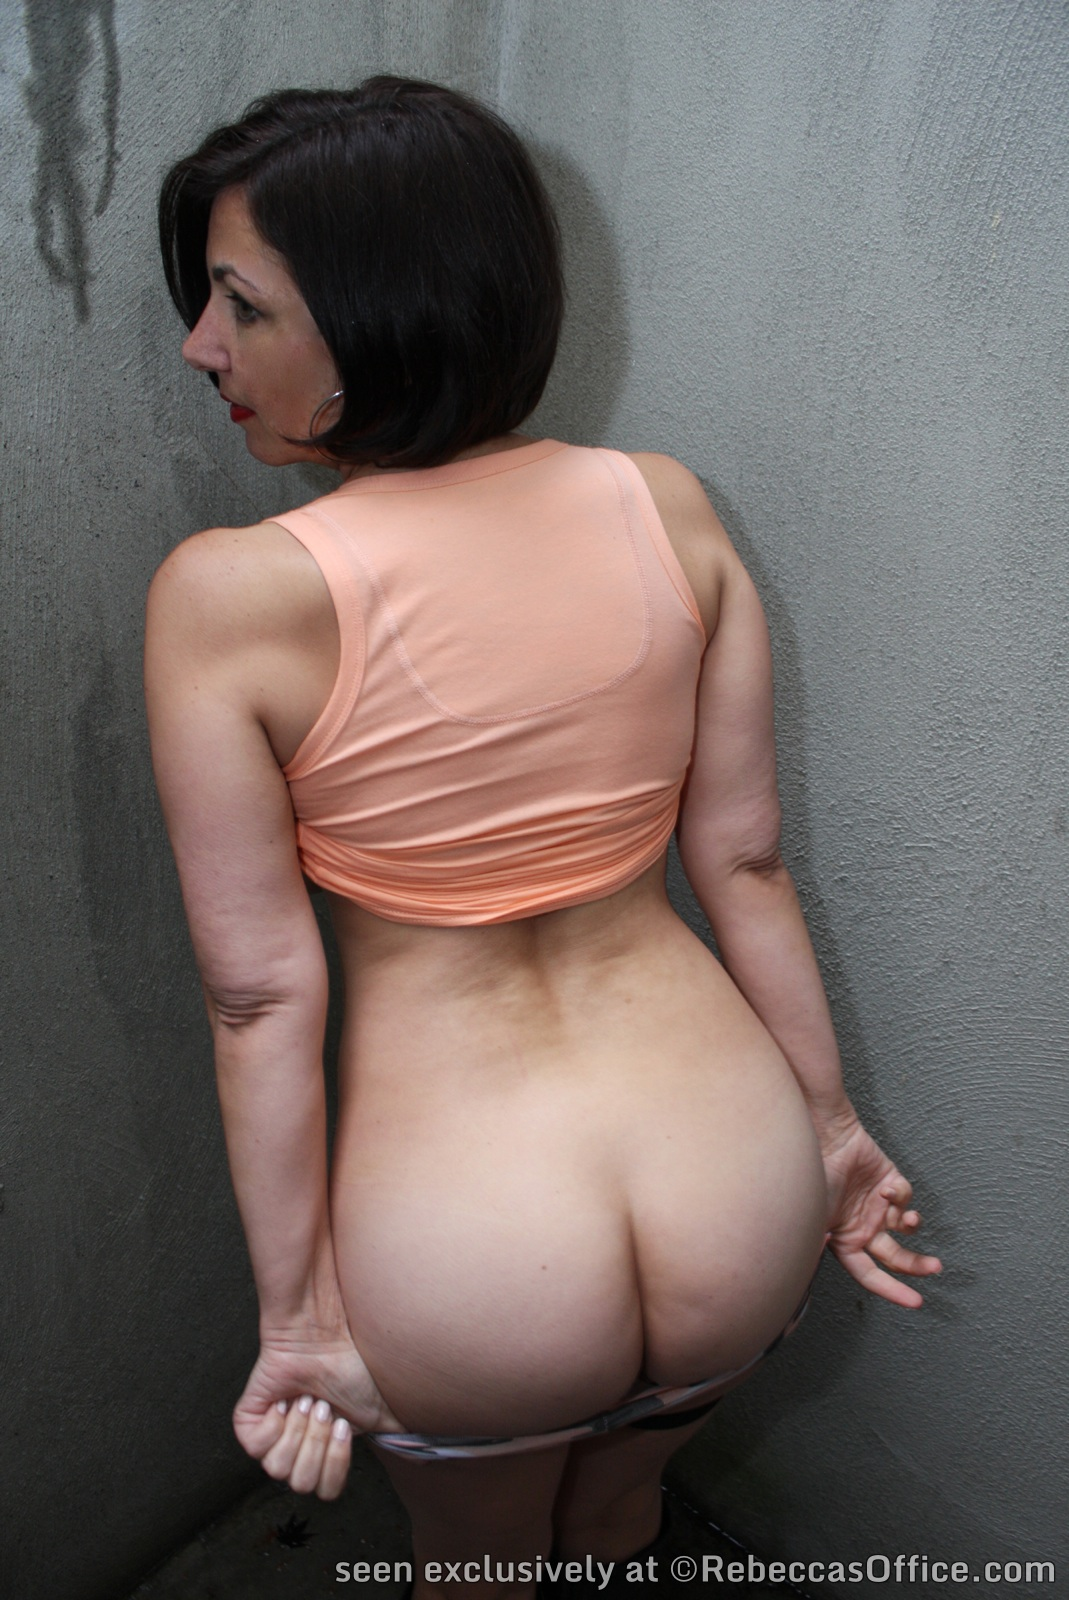 For wife swinger tits gallery hope, you